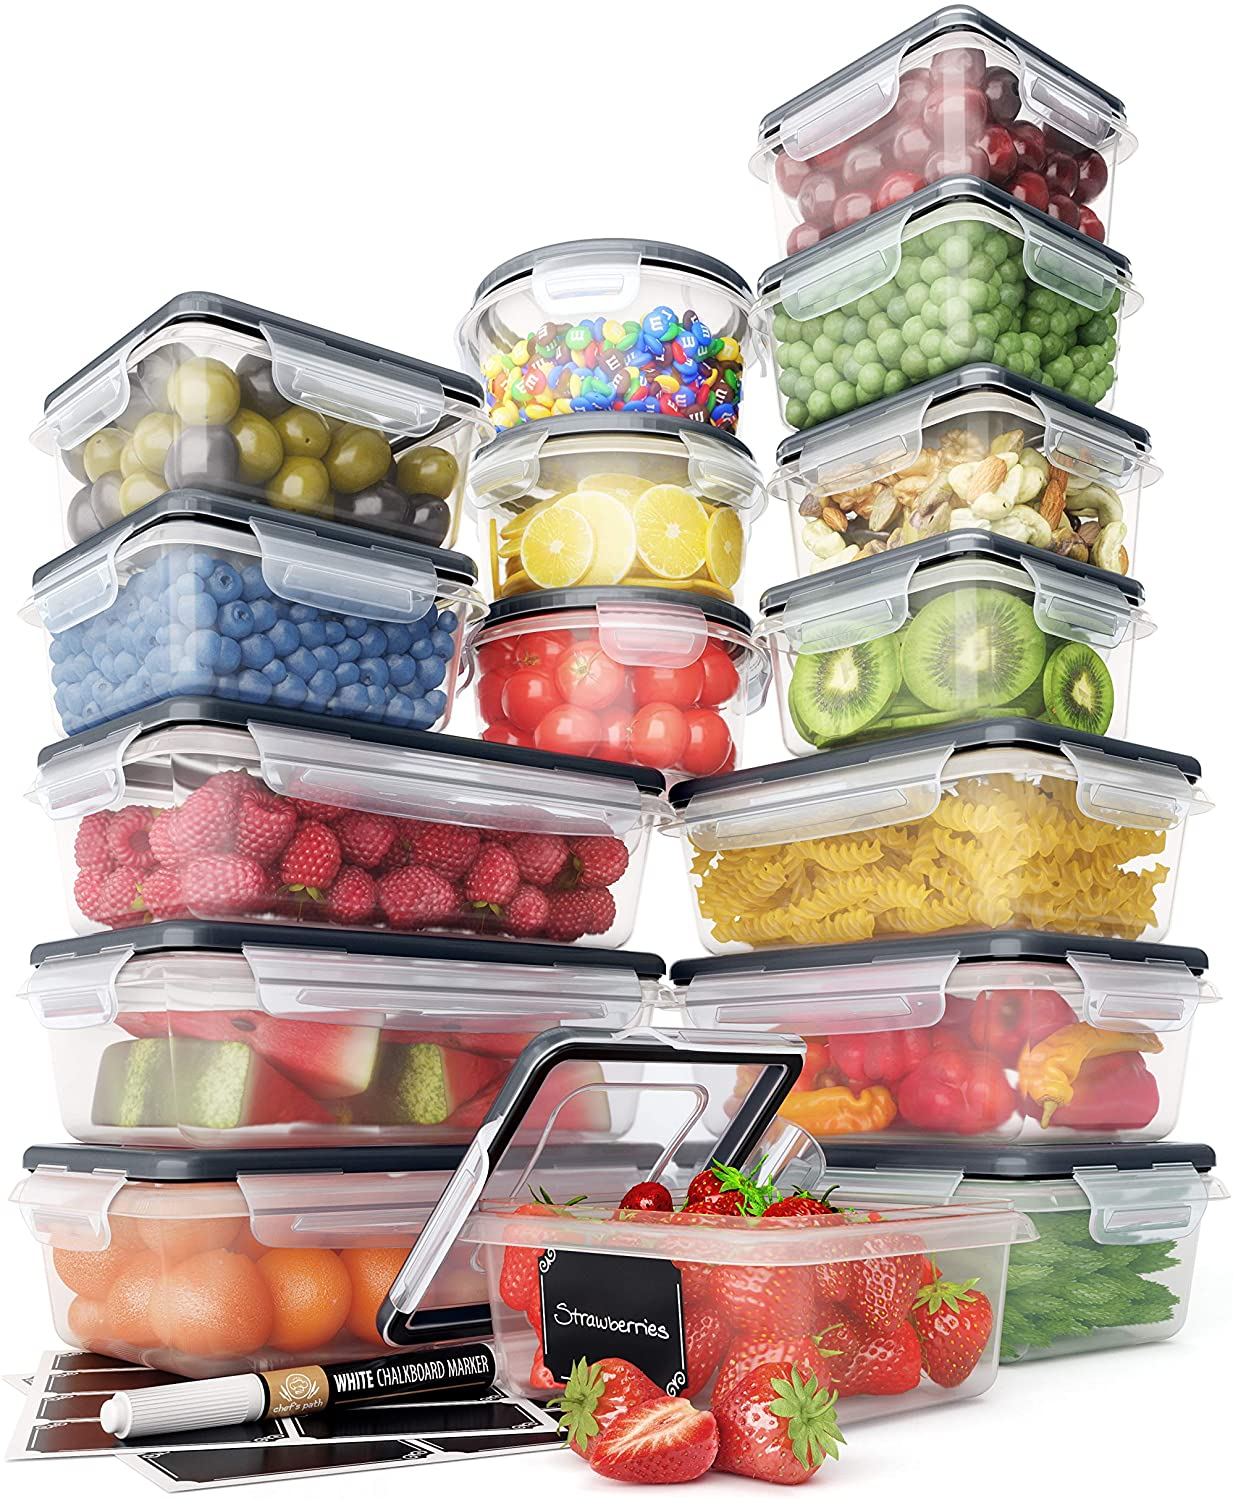 Food Storage Containers Set - Airtight Plastic Containers with Easy Snap Lids (16 Pack) - Leak Proof Kitchen & Pantry Organization - BPA-Free - 16 Chalkboard Labels & Marker - Chef's Path: Kitchen & Dining